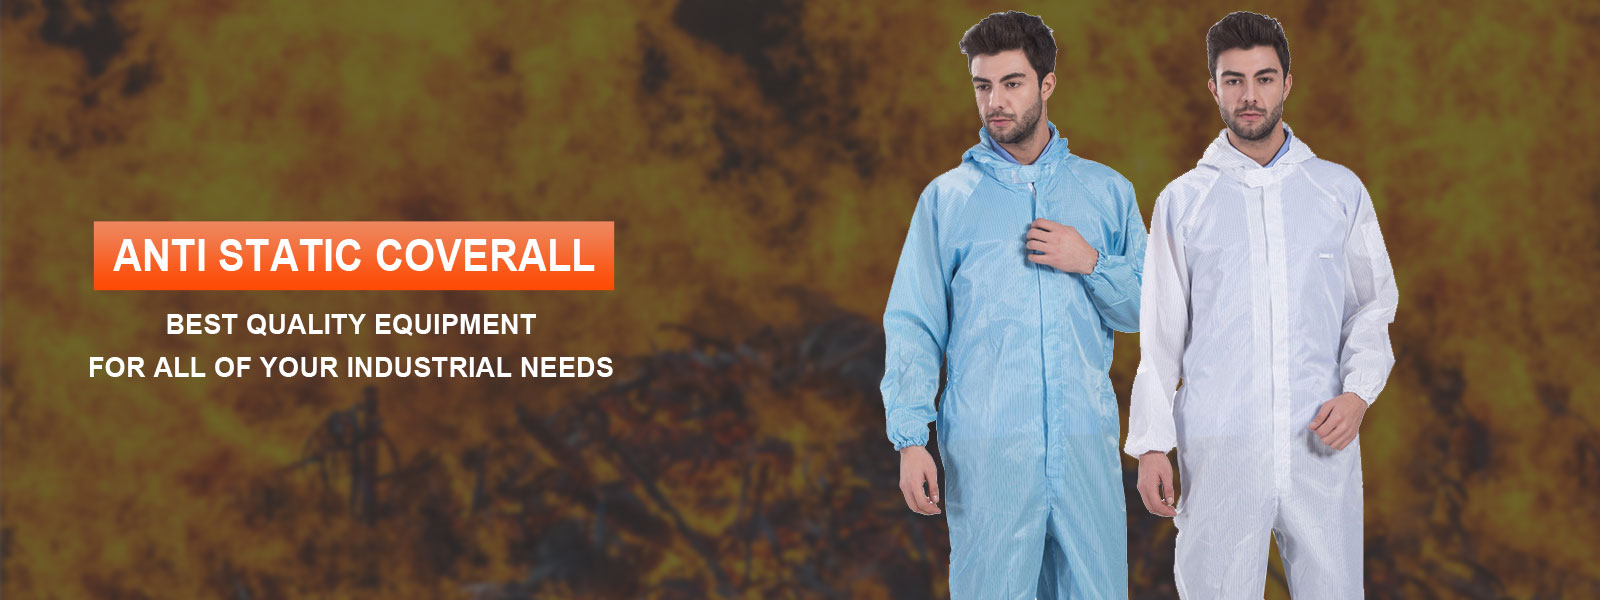 Anti Static Coverall Manufacturers in Saudi arabia